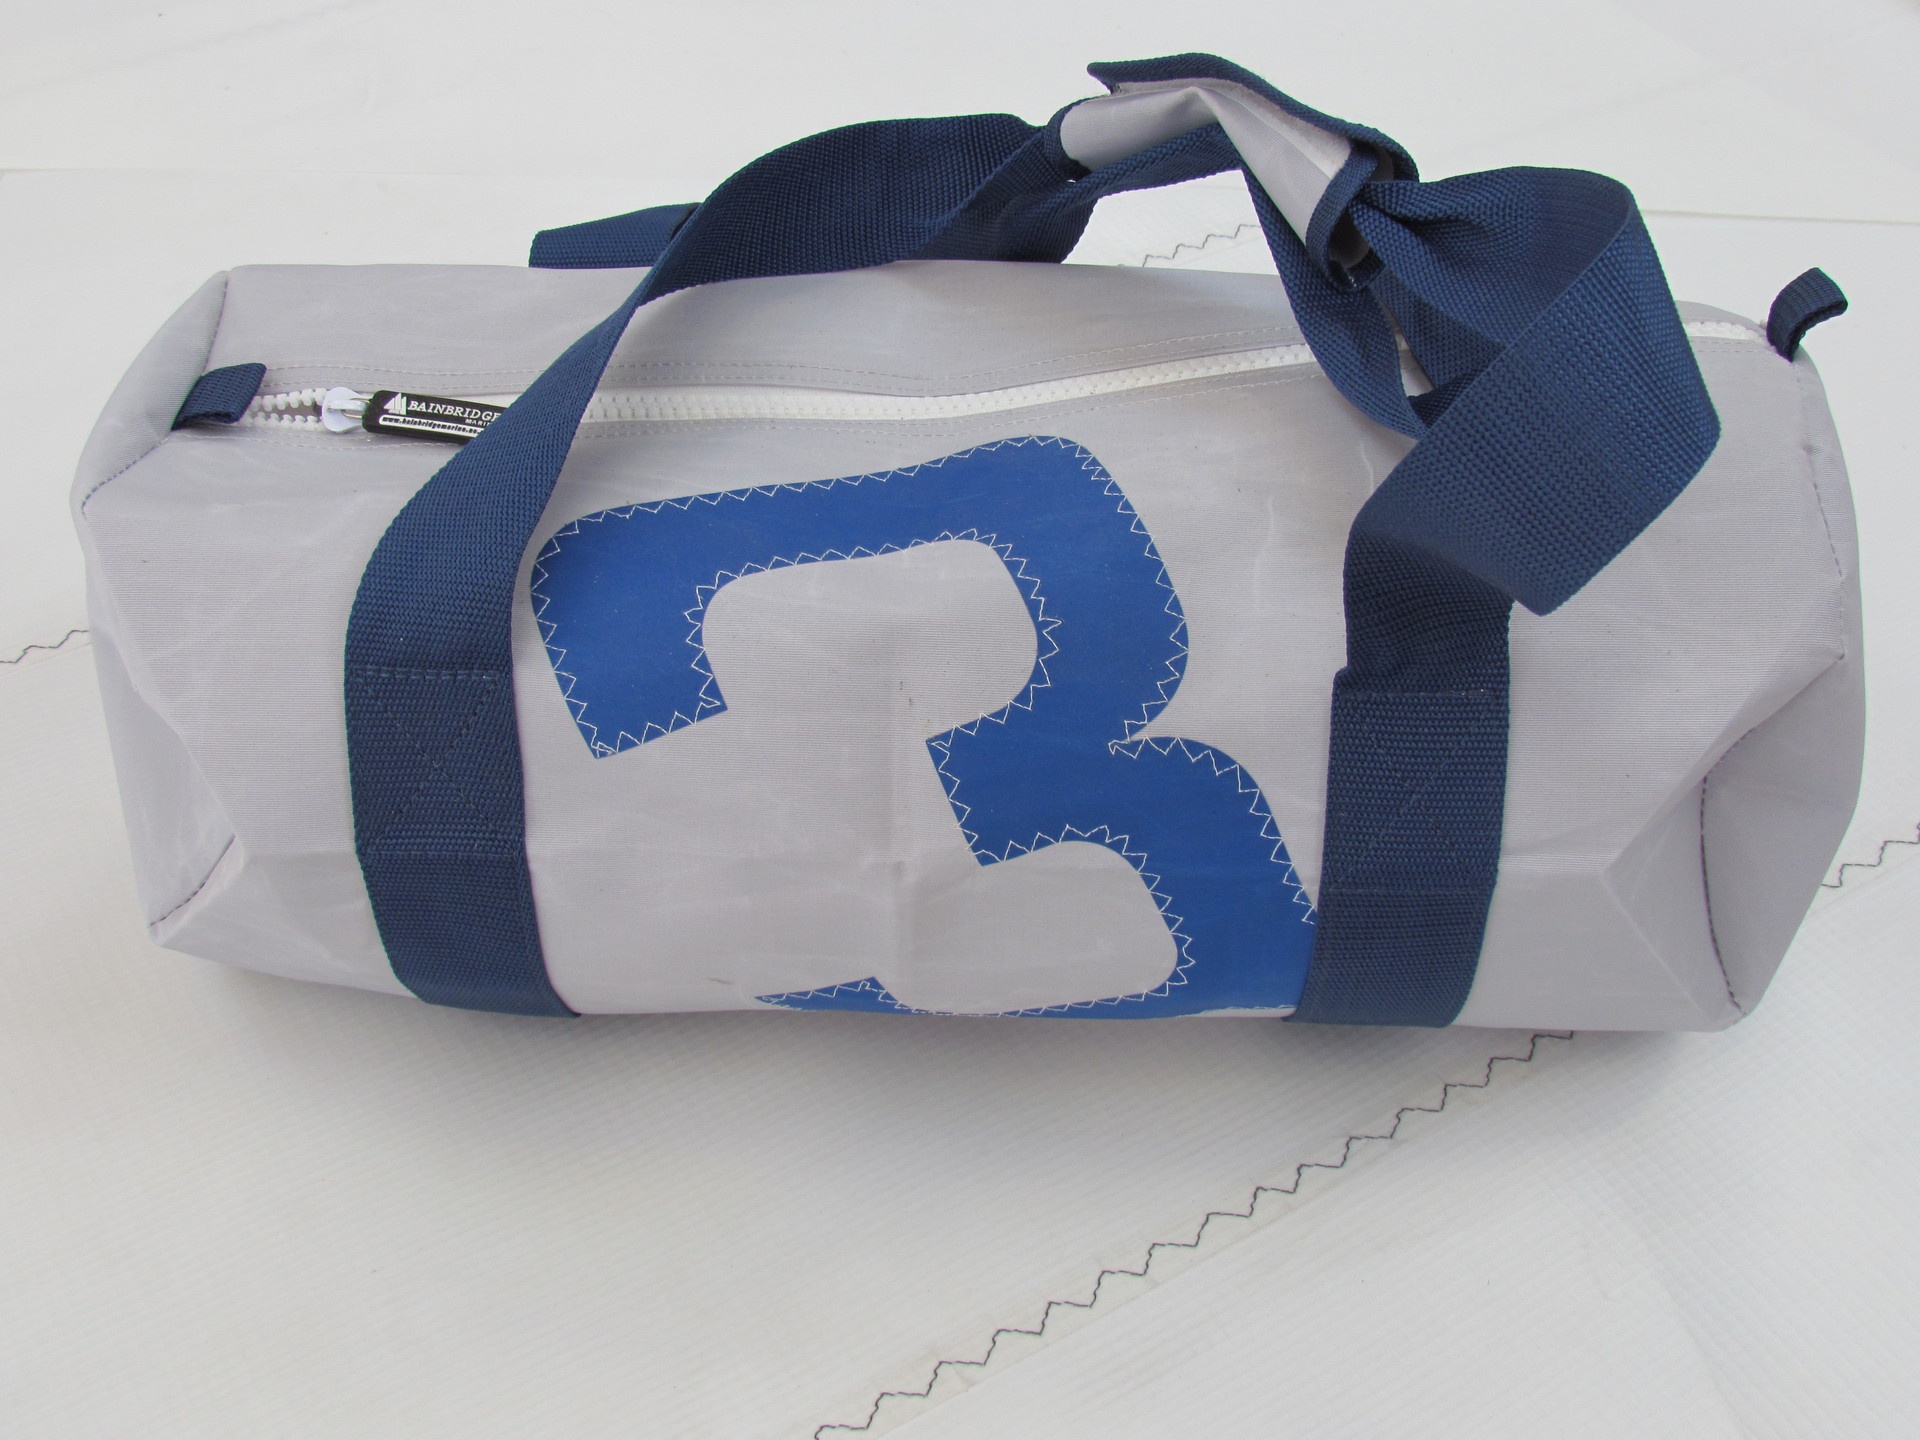 Small Sailcloth Gear Bag